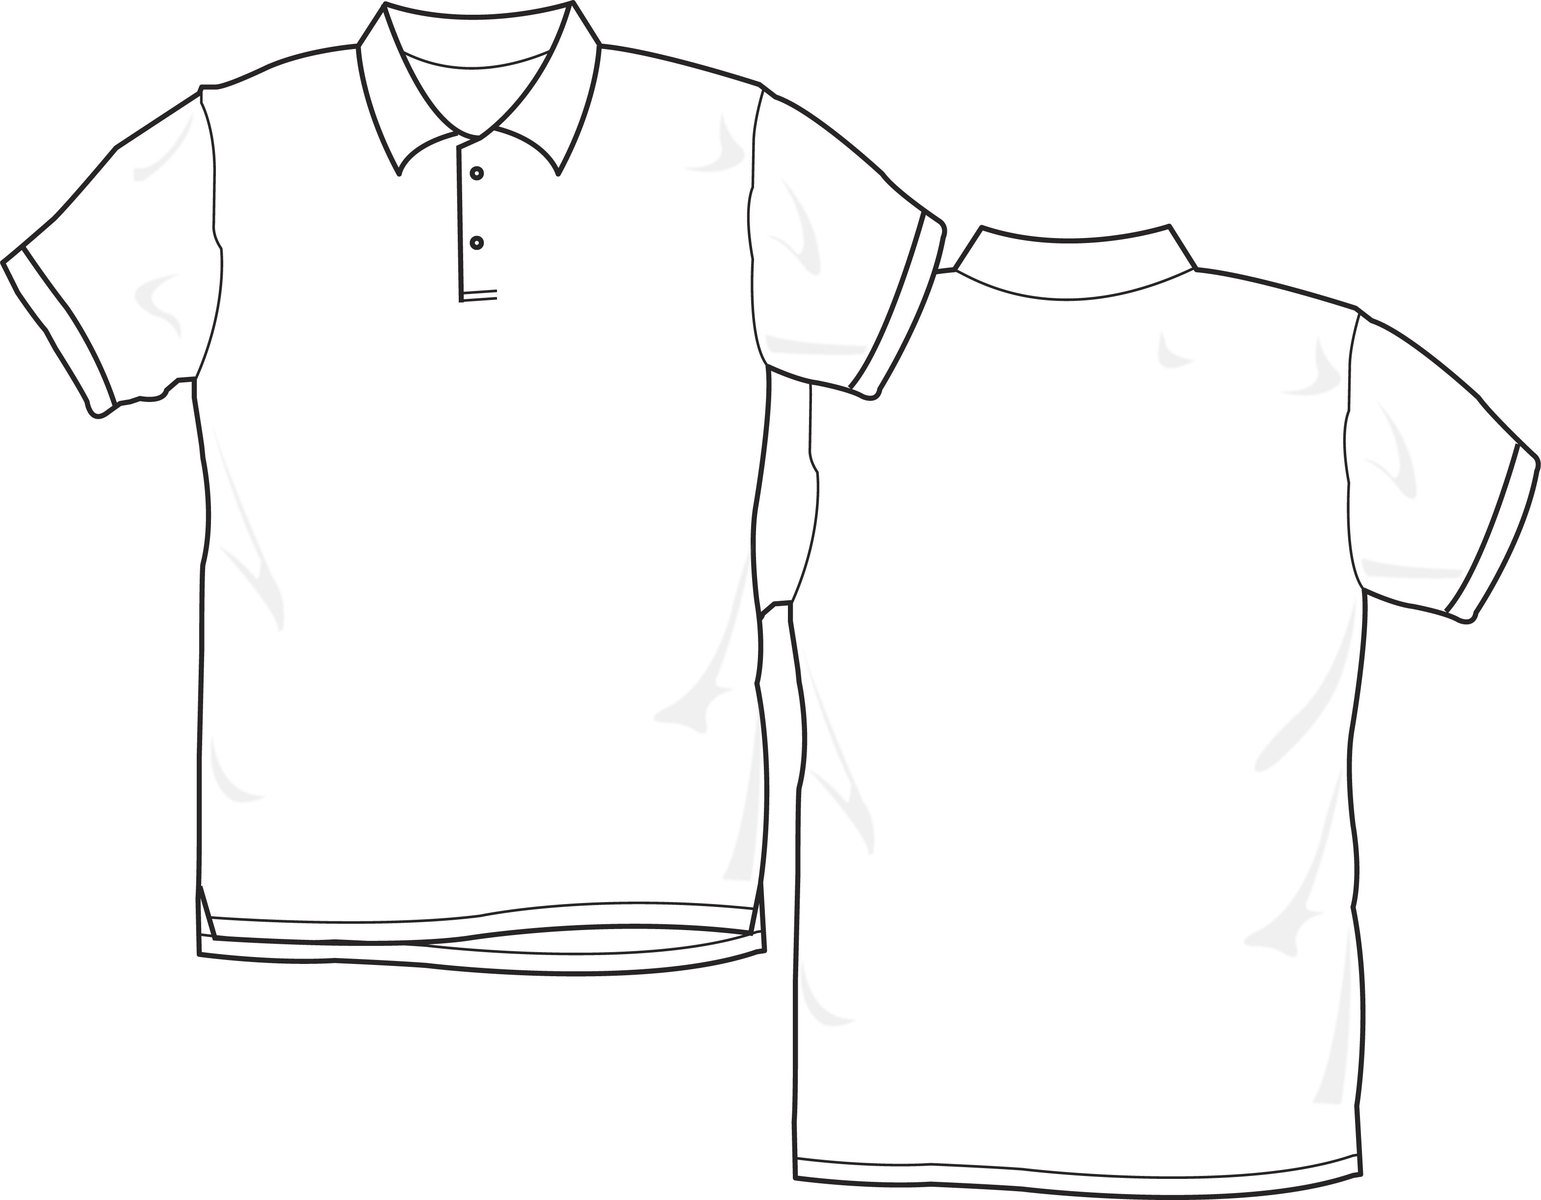 f86750c0dda50 Free Camisa polo branca Stock Photo - FreeImages.com